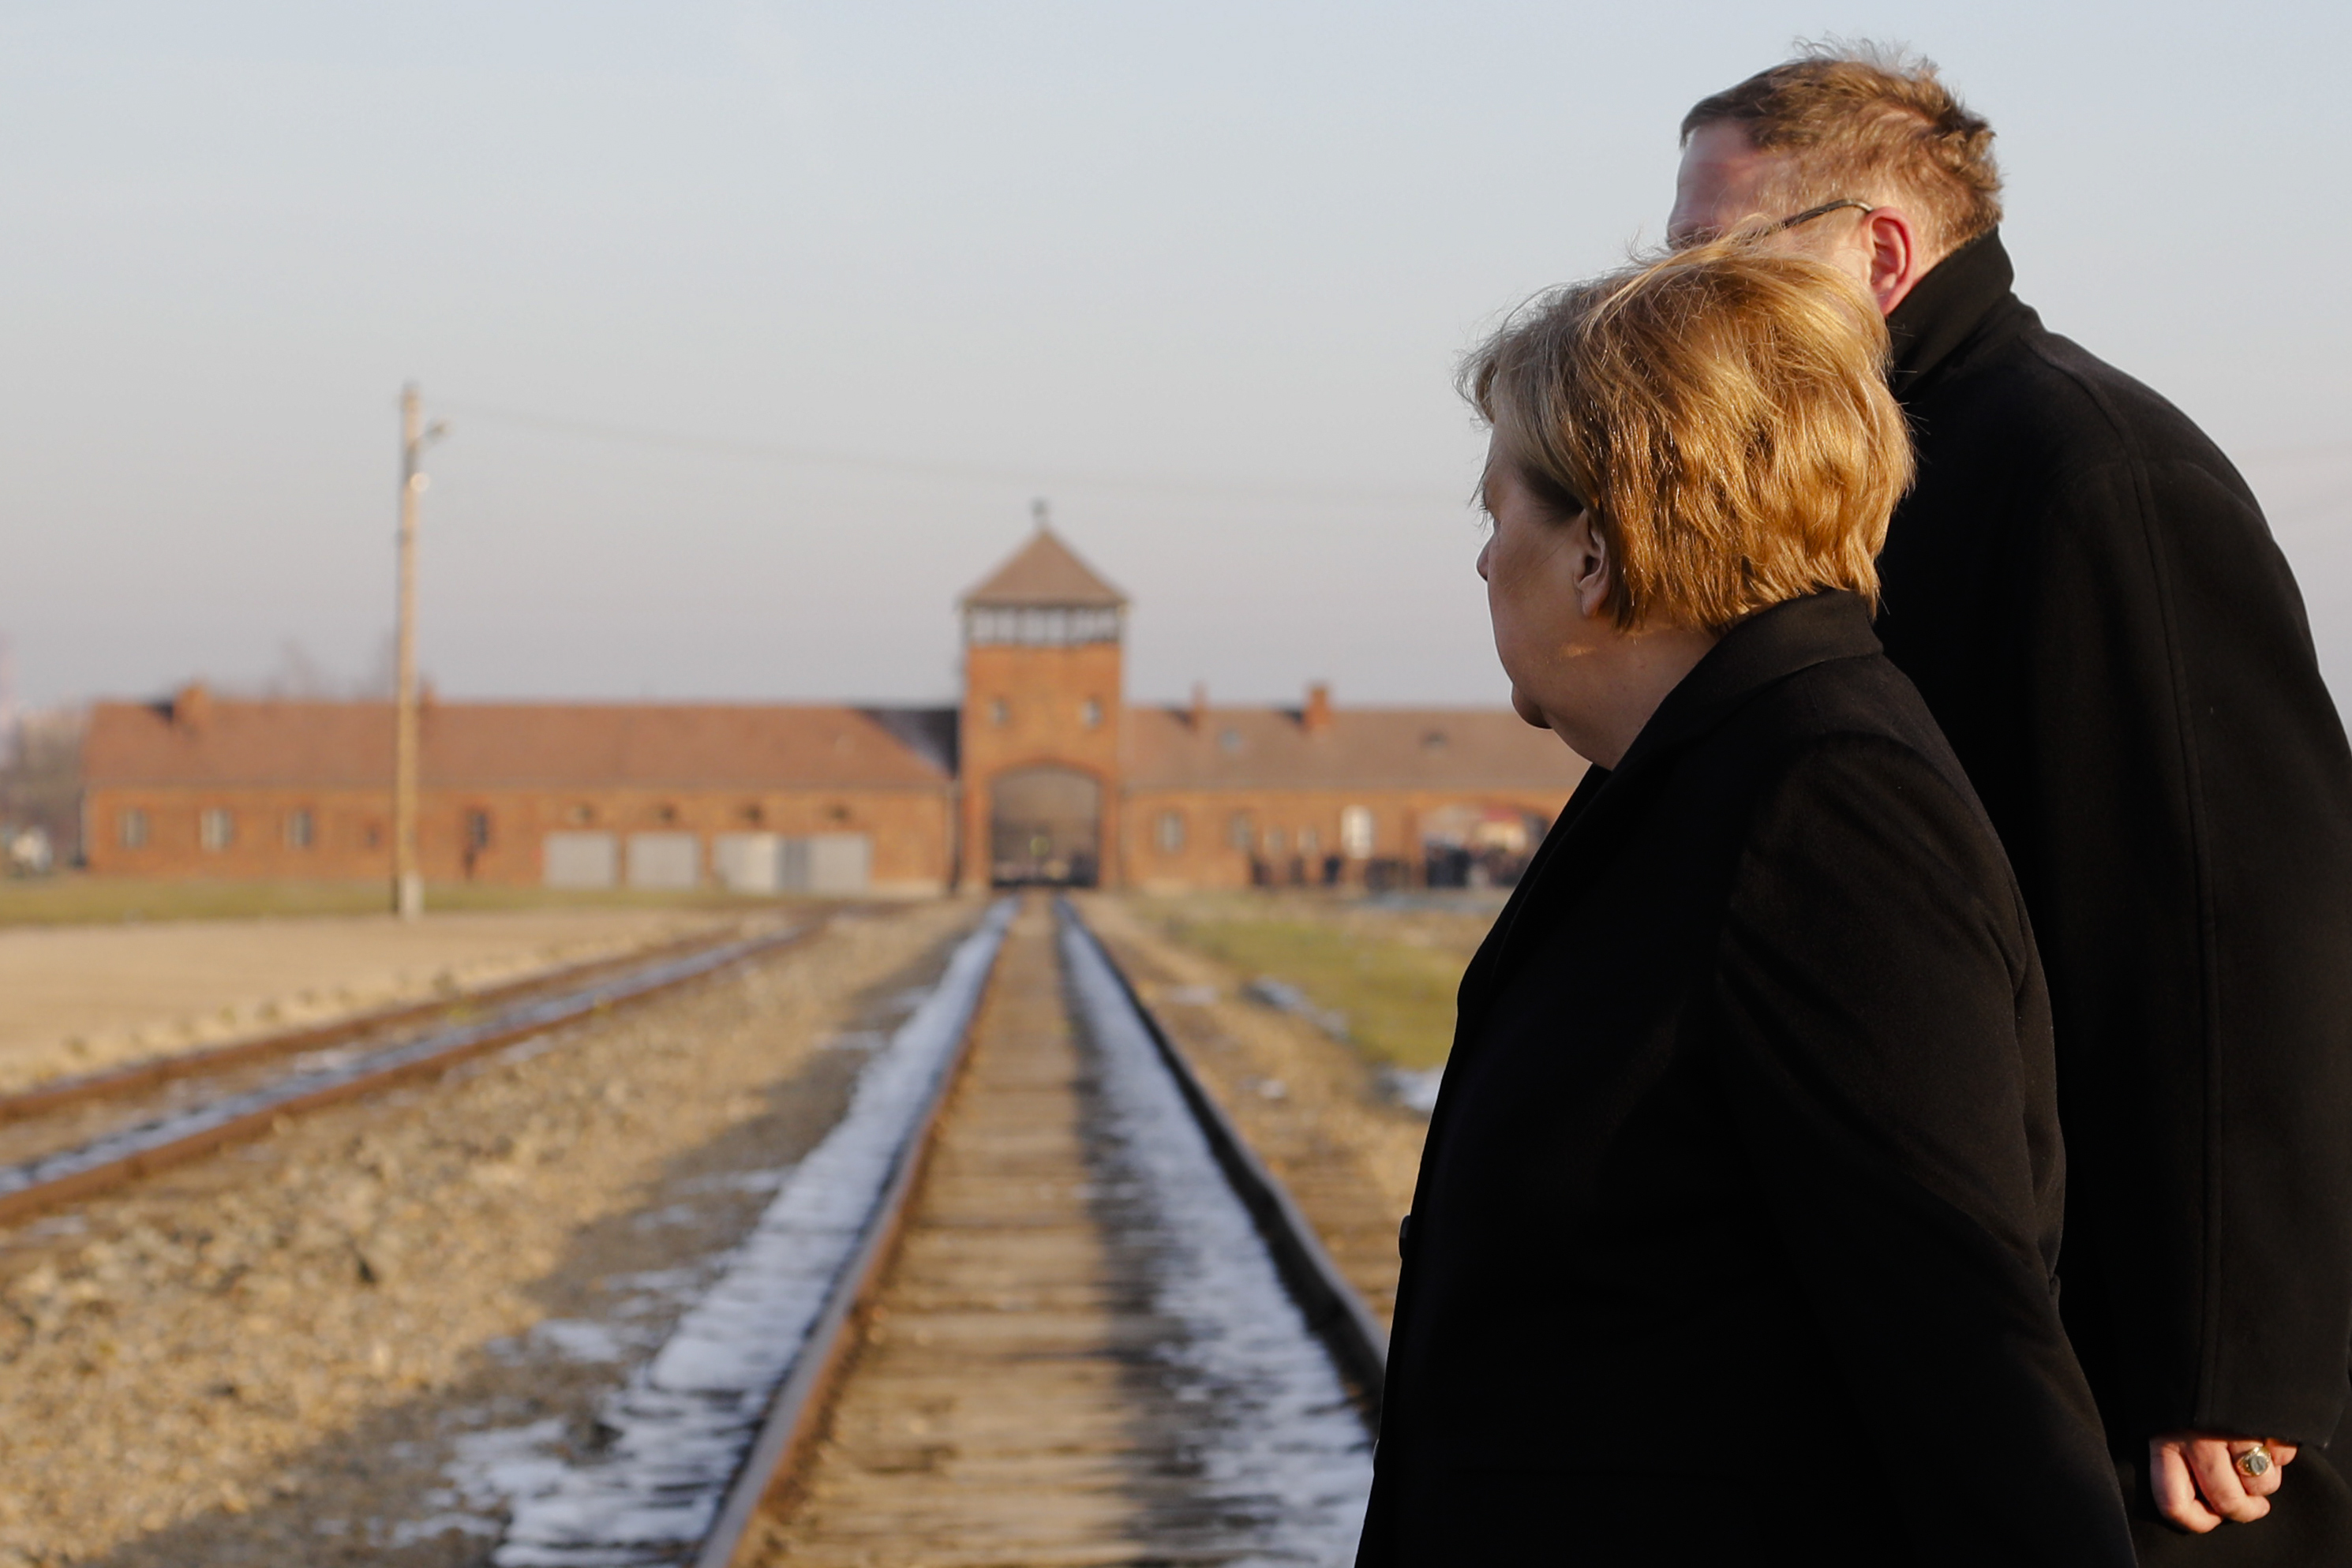 Germany's Angela Merkel Voices Feeling of 'Deep Shame' During Auschwitz Visit